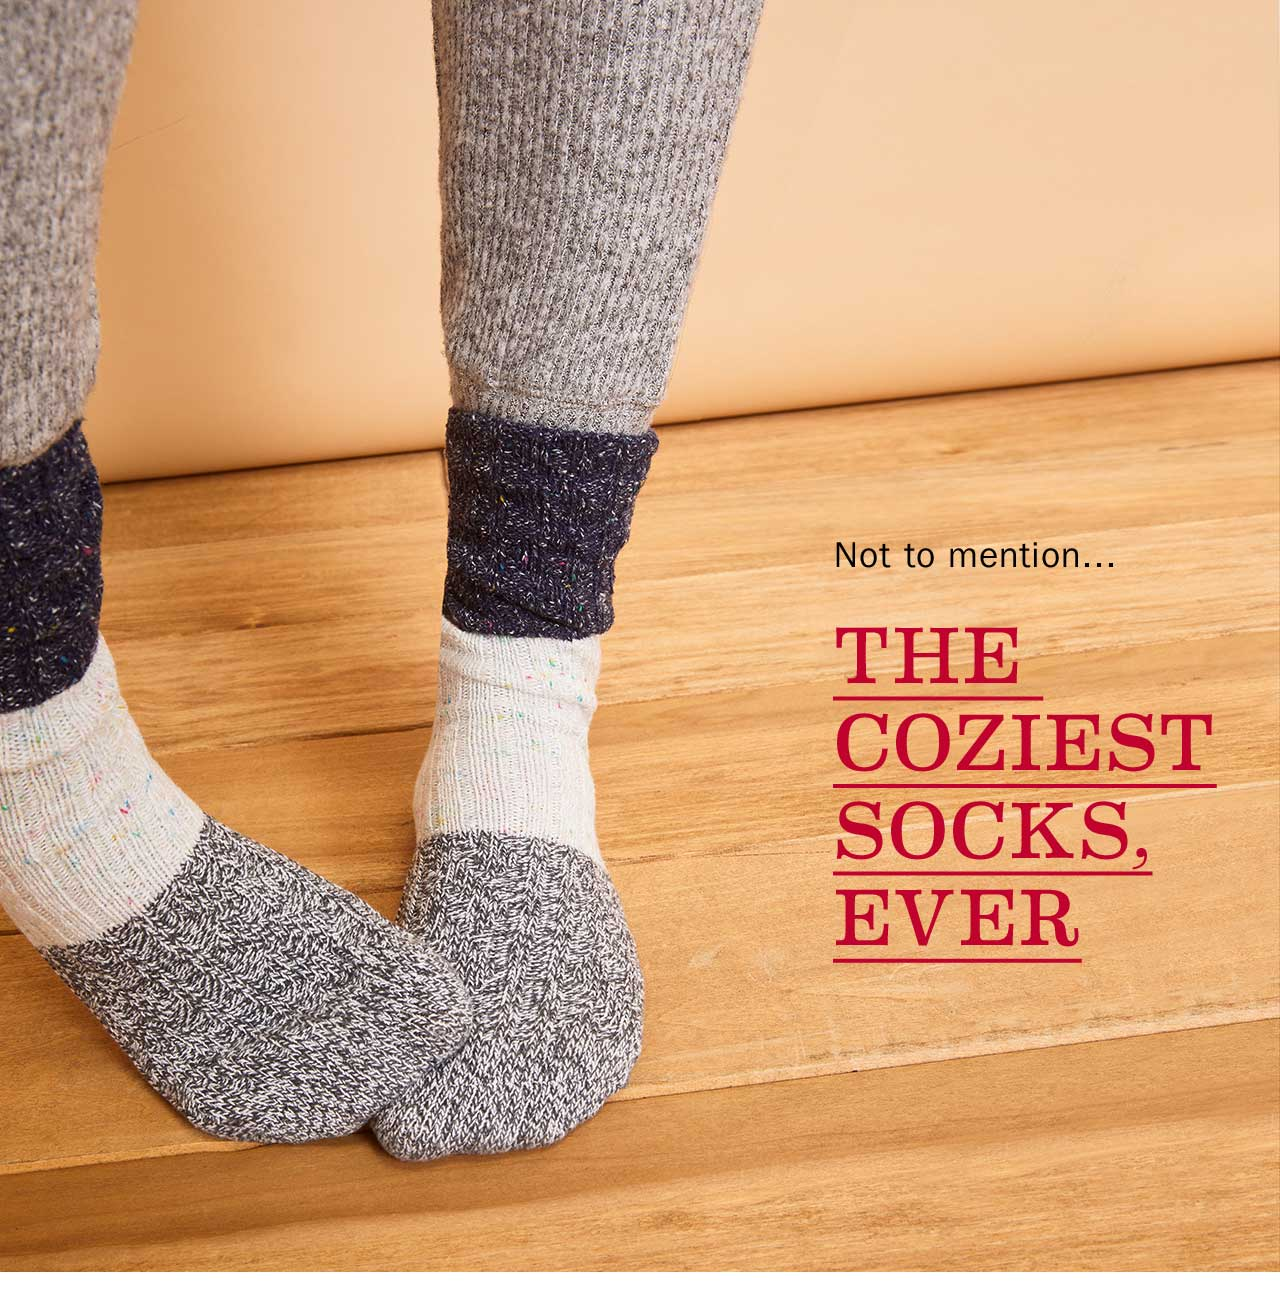 THE COZIEST SOCKS, EVER